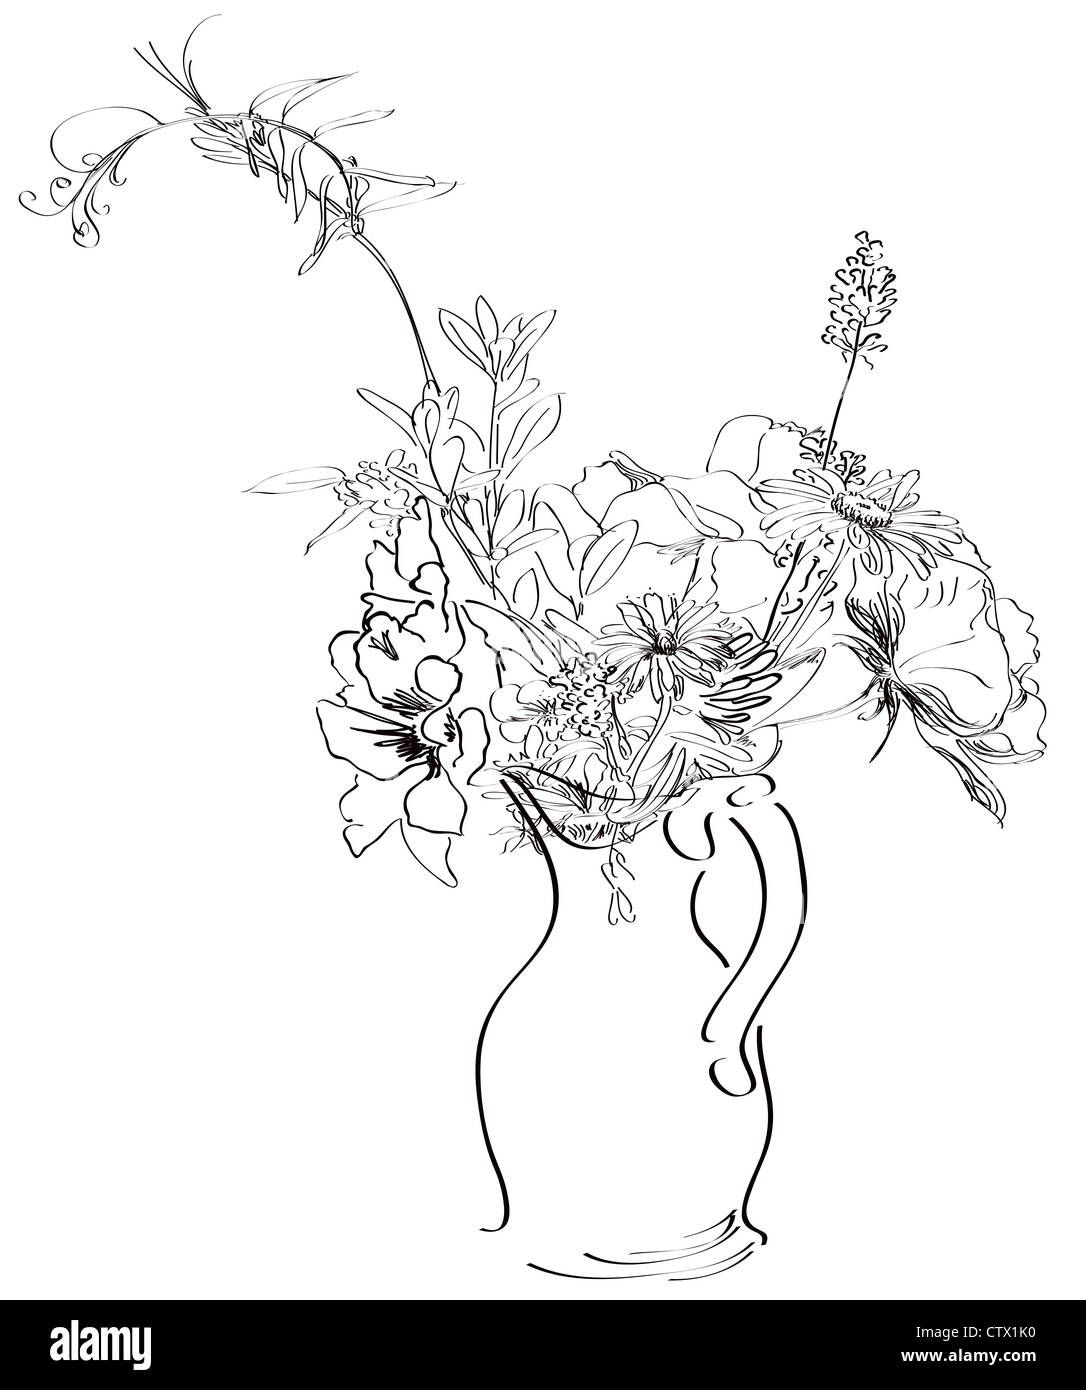 Sketch Of Spring Flowers In A Vase